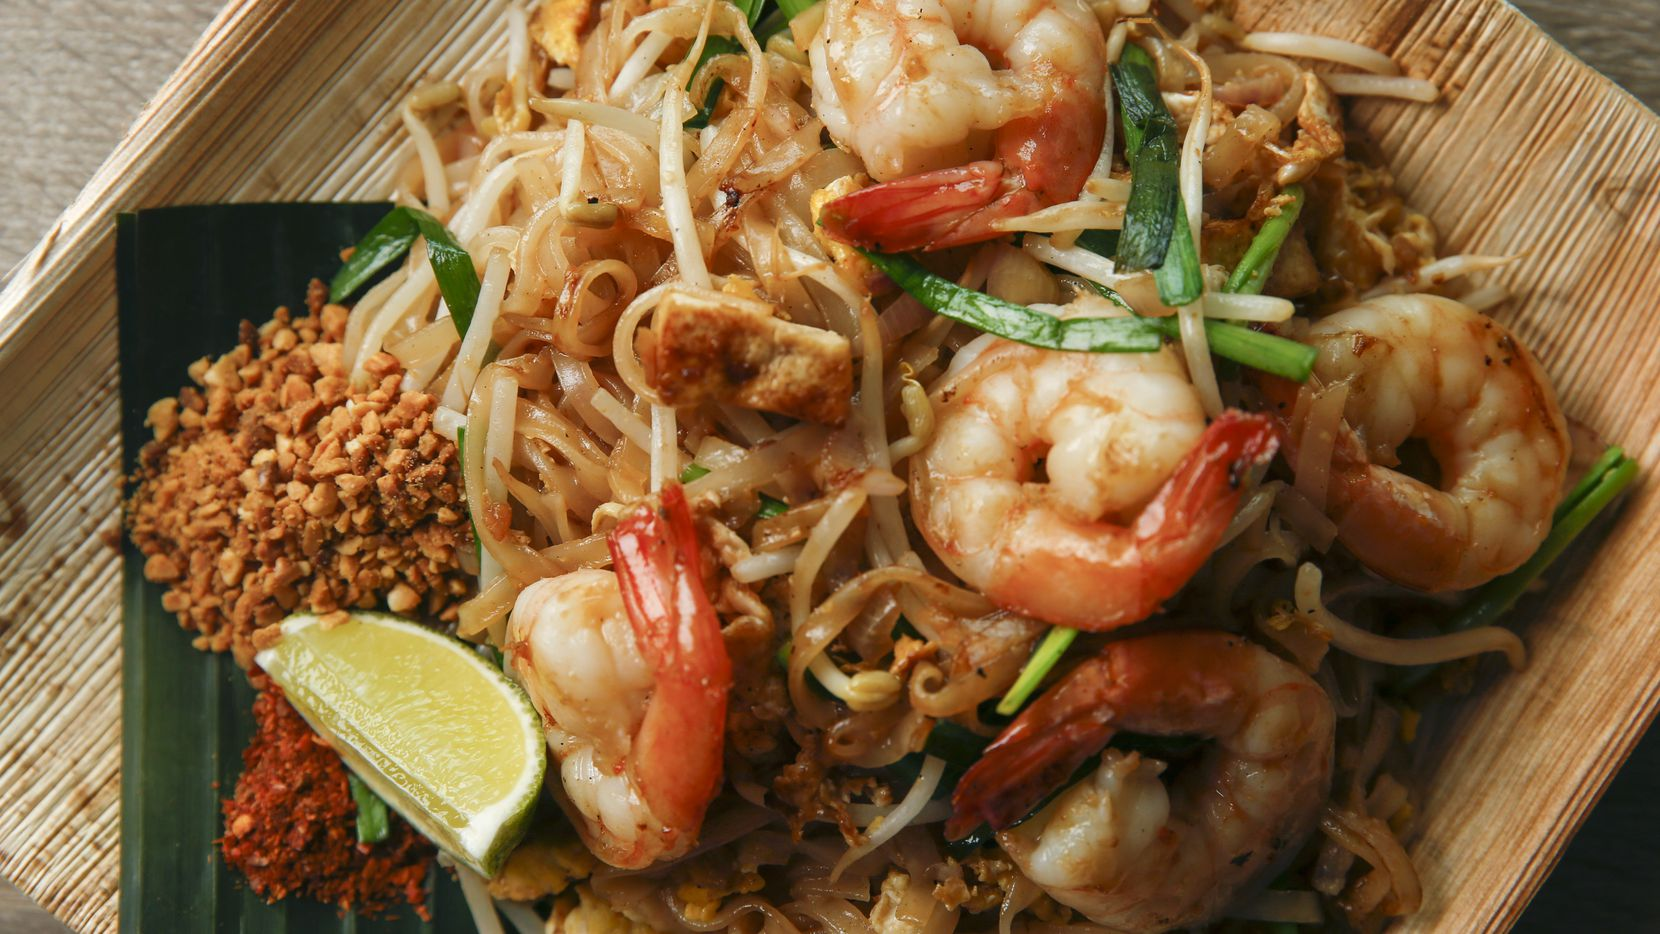 Pad Thai Goong Sod, stir fried noodles,